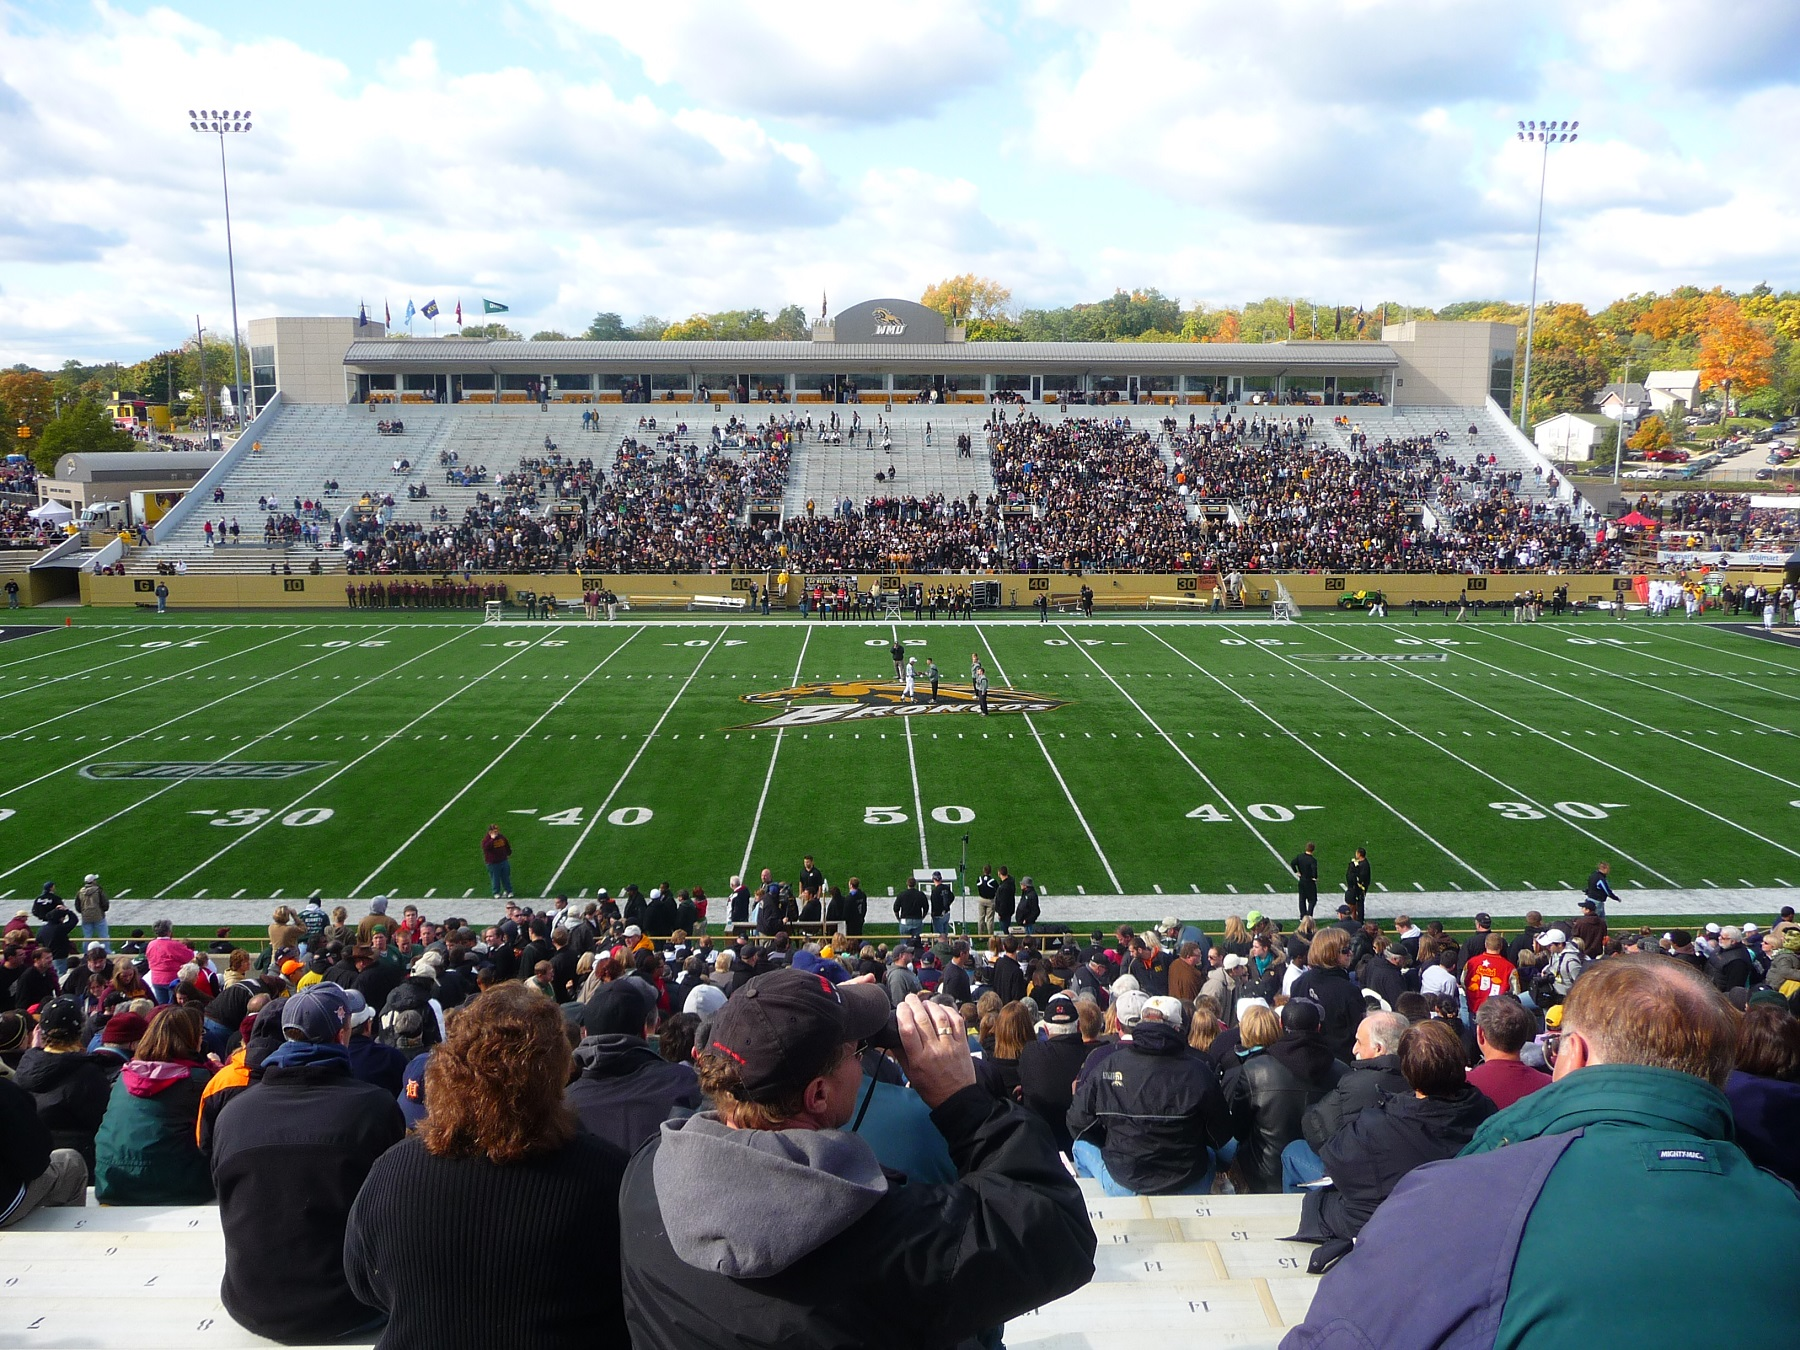 Waldo Stadium, home of the Western Michigan Broncos